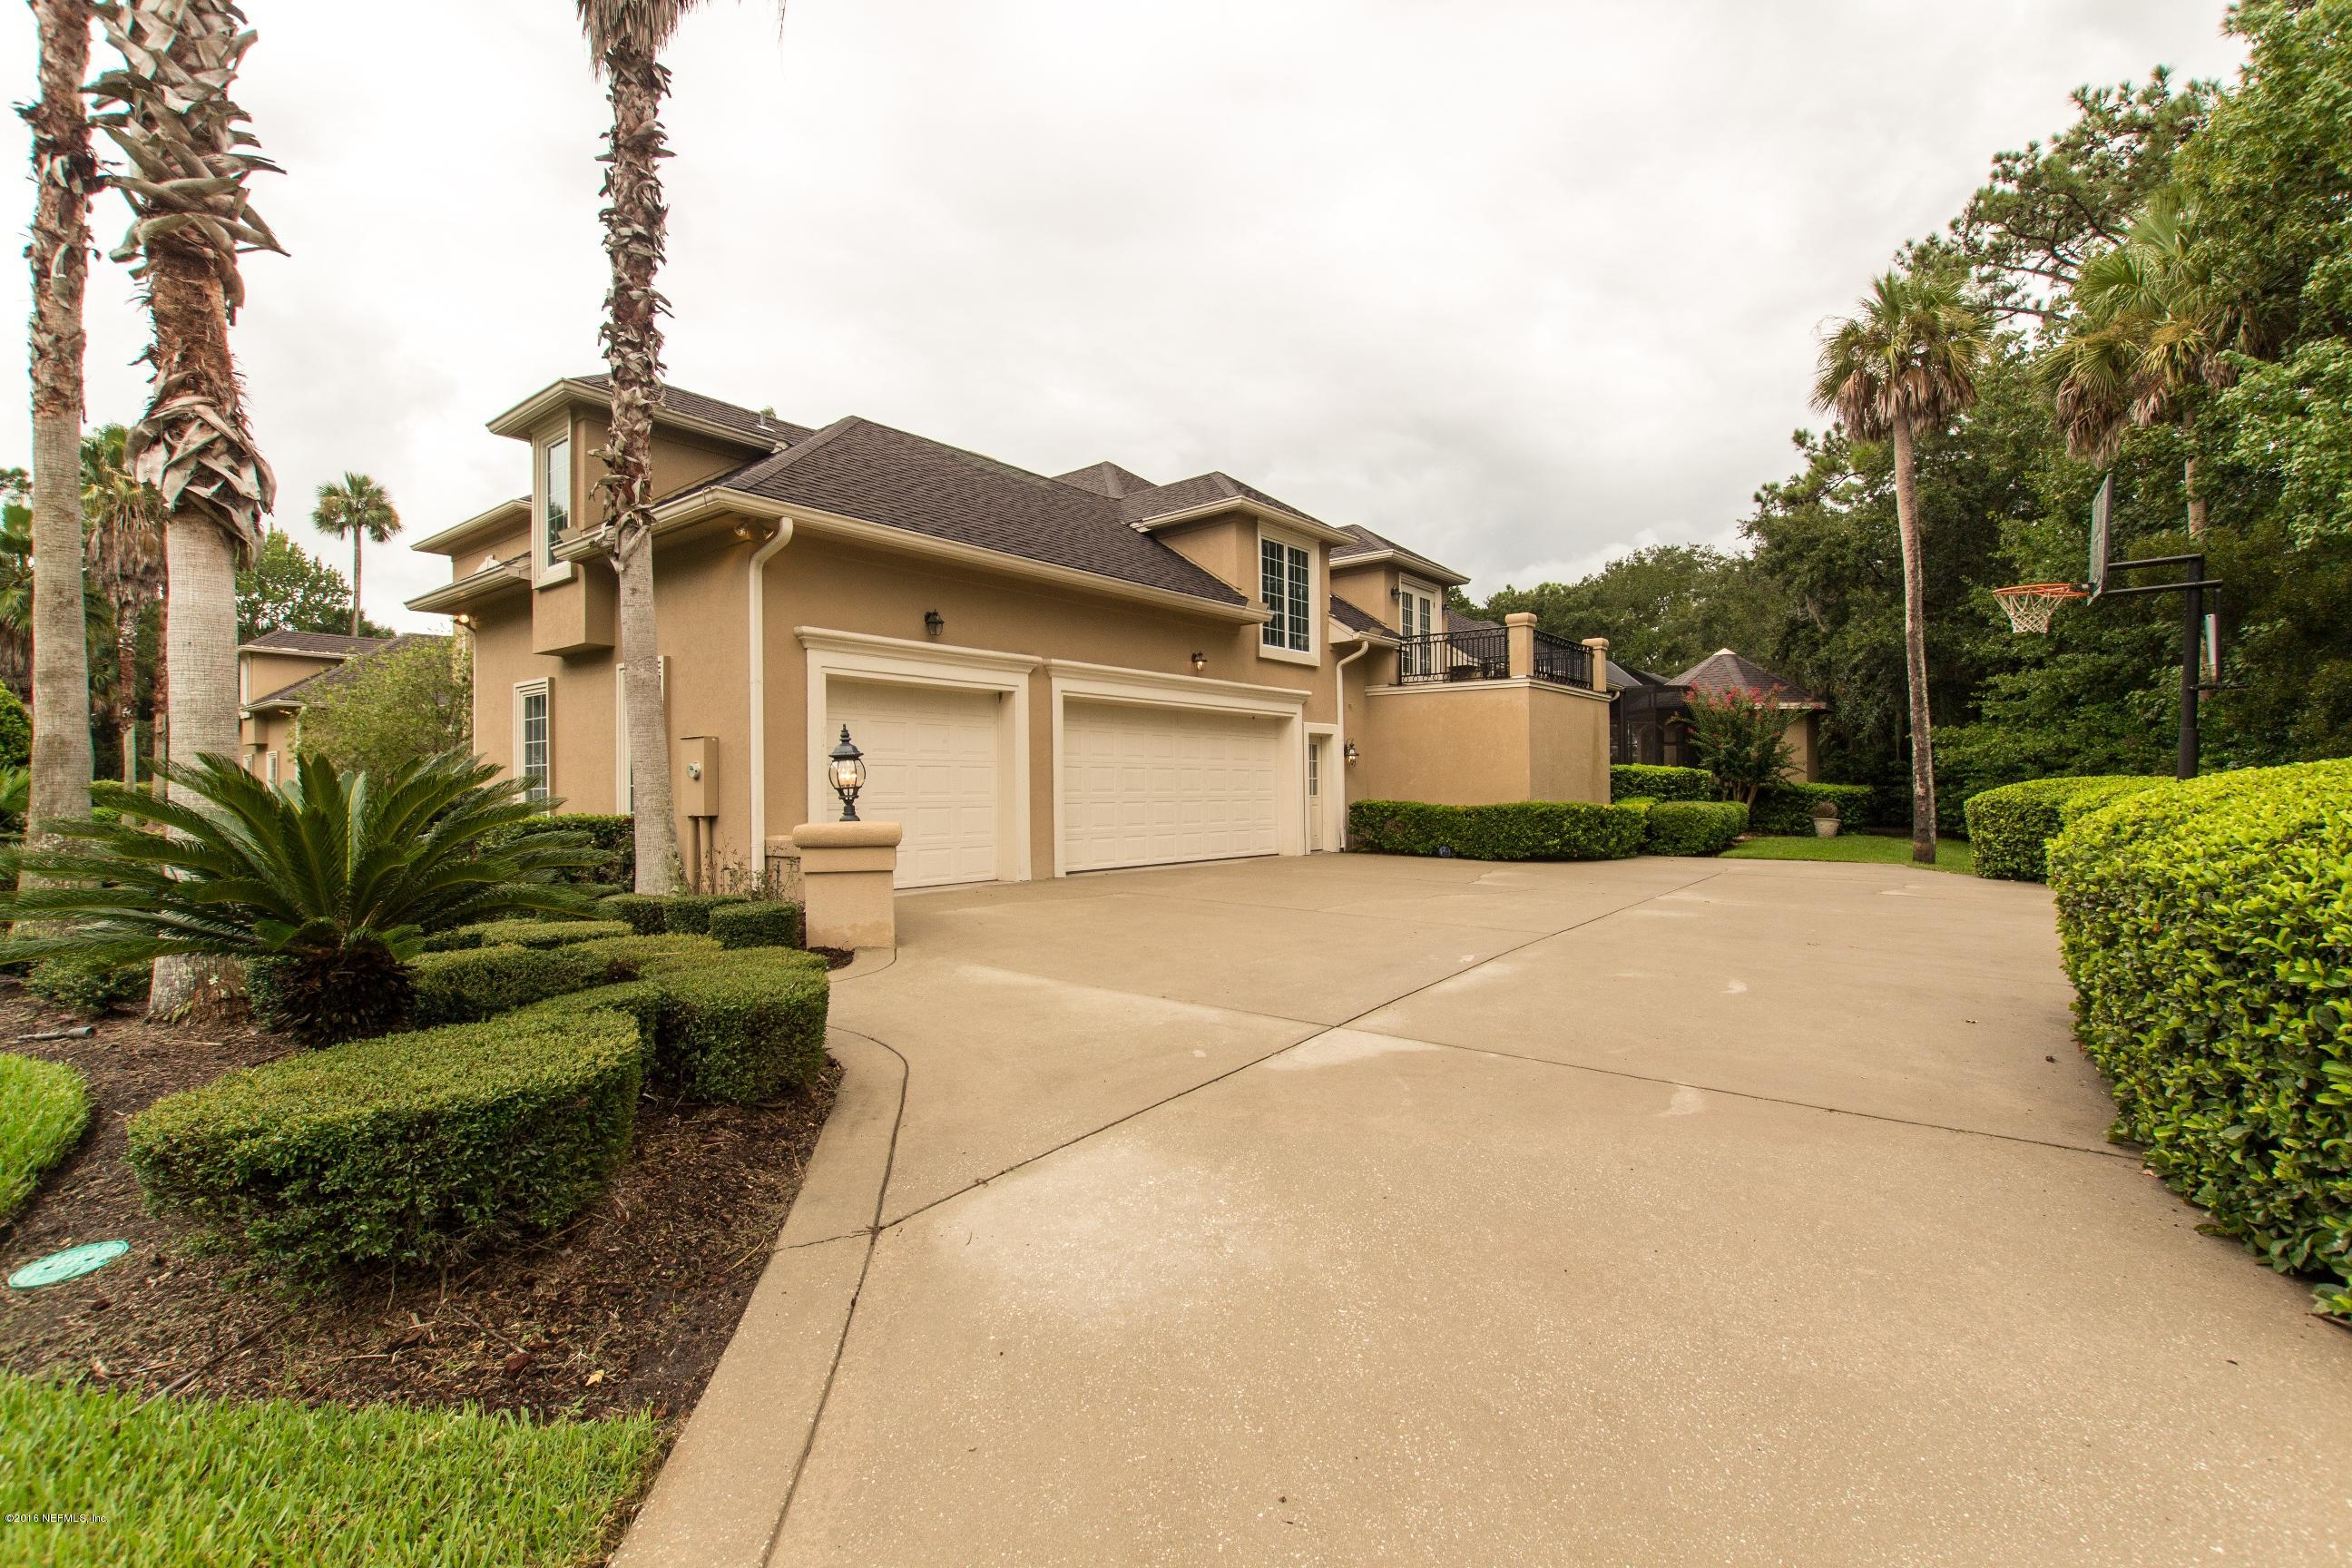 7230 OAKMONT, PONTE VEDRA BEACH, FLORIDA 32082, 6 Bedrooms Bedrooms, ,7 BathroomsBathrooms,Residential - single family,For sale,OAKMONT,844850